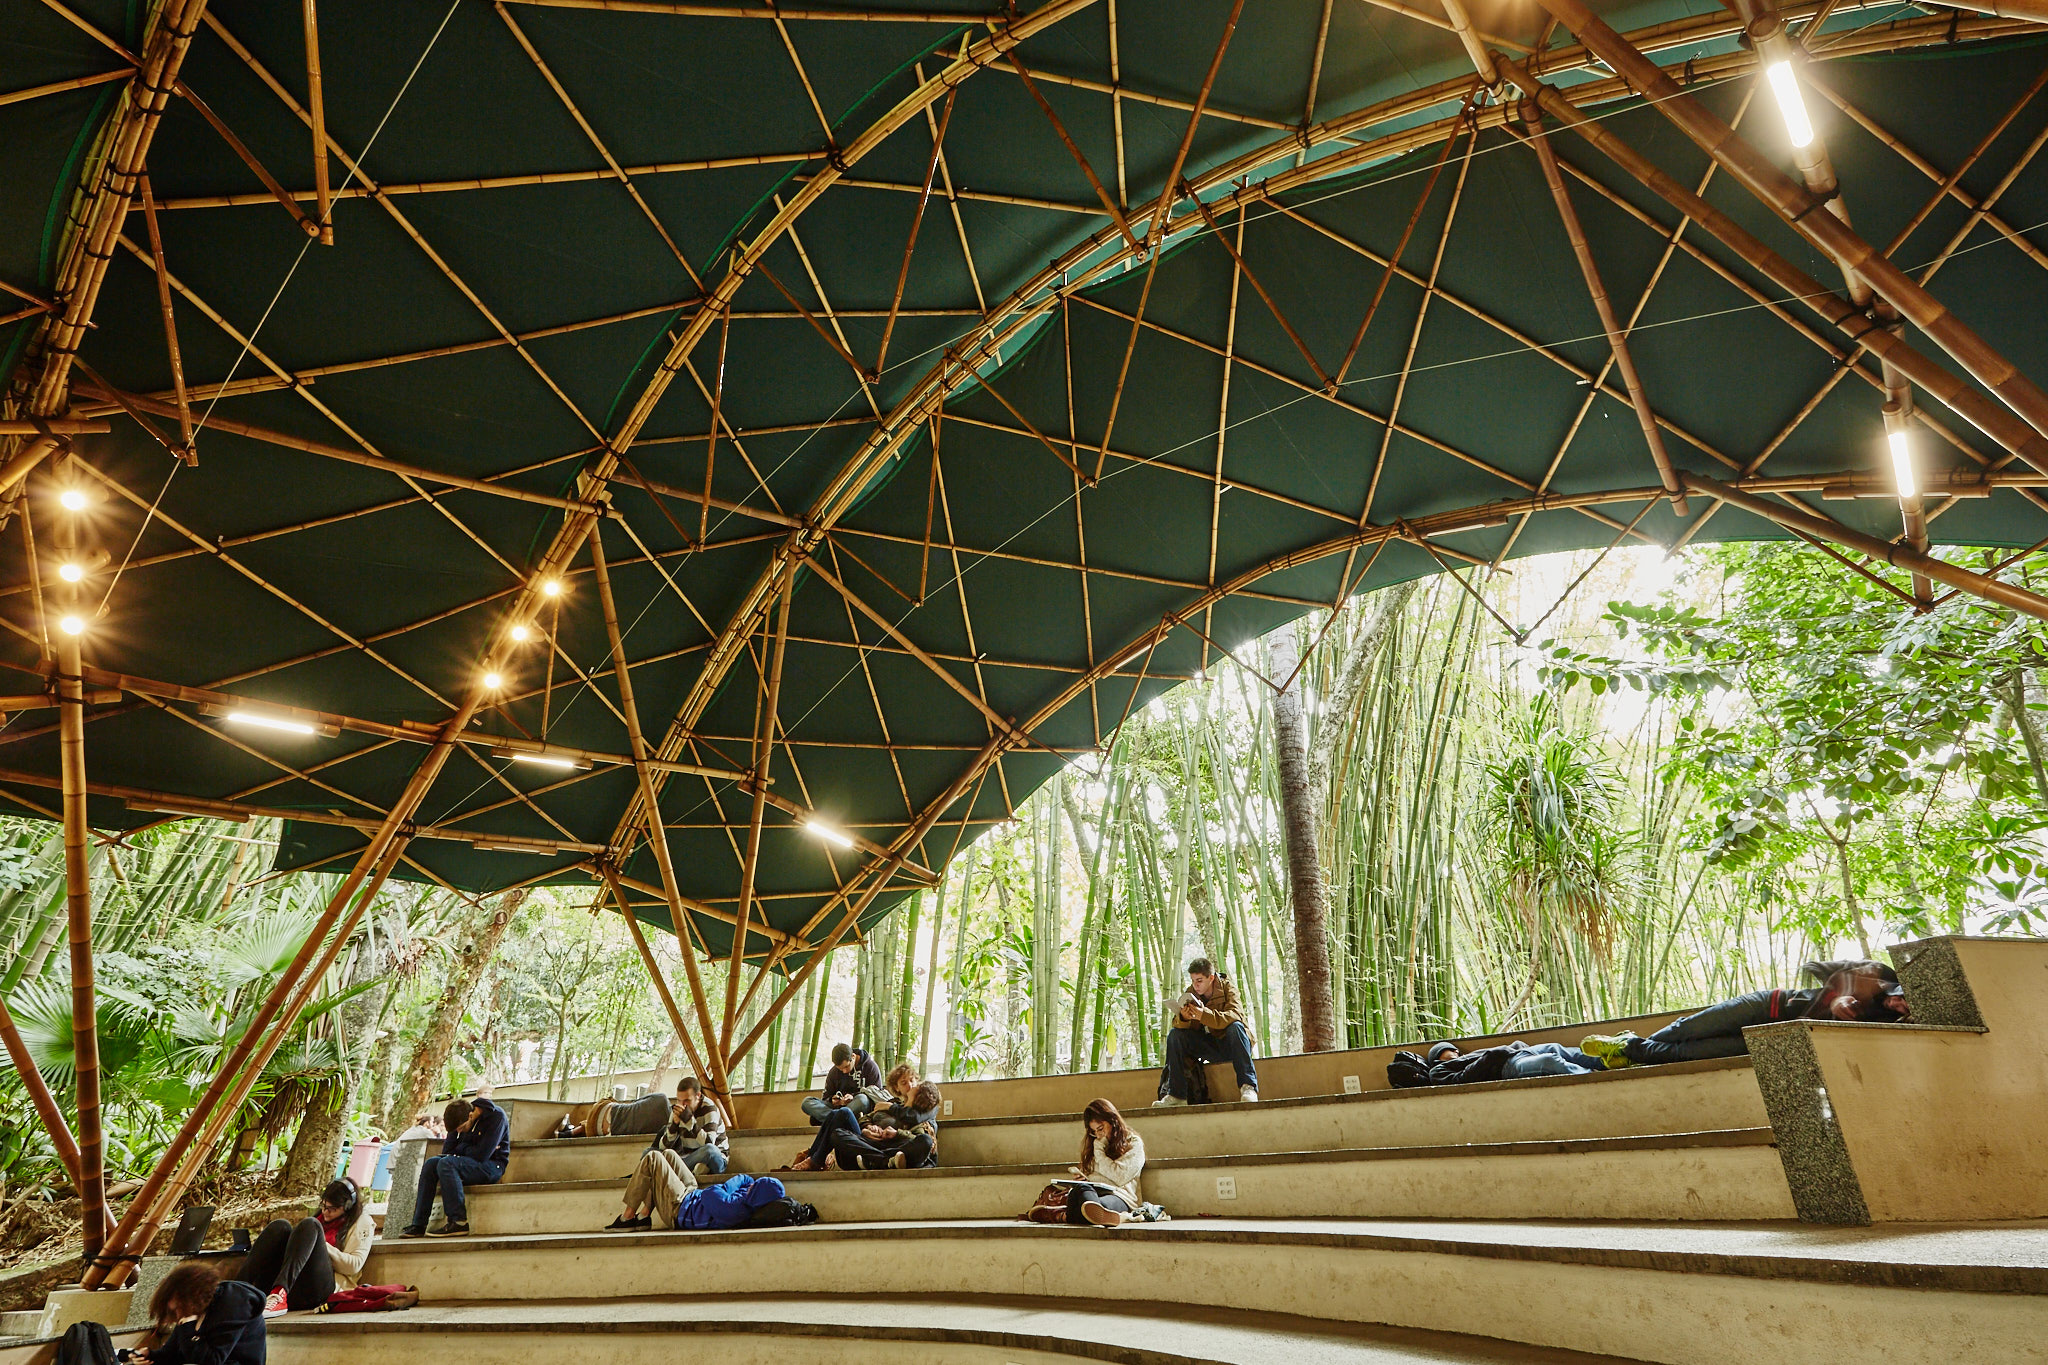 Bamboo-Active-Bending-Textile-Hybrid-Space-Structure-6.jpg